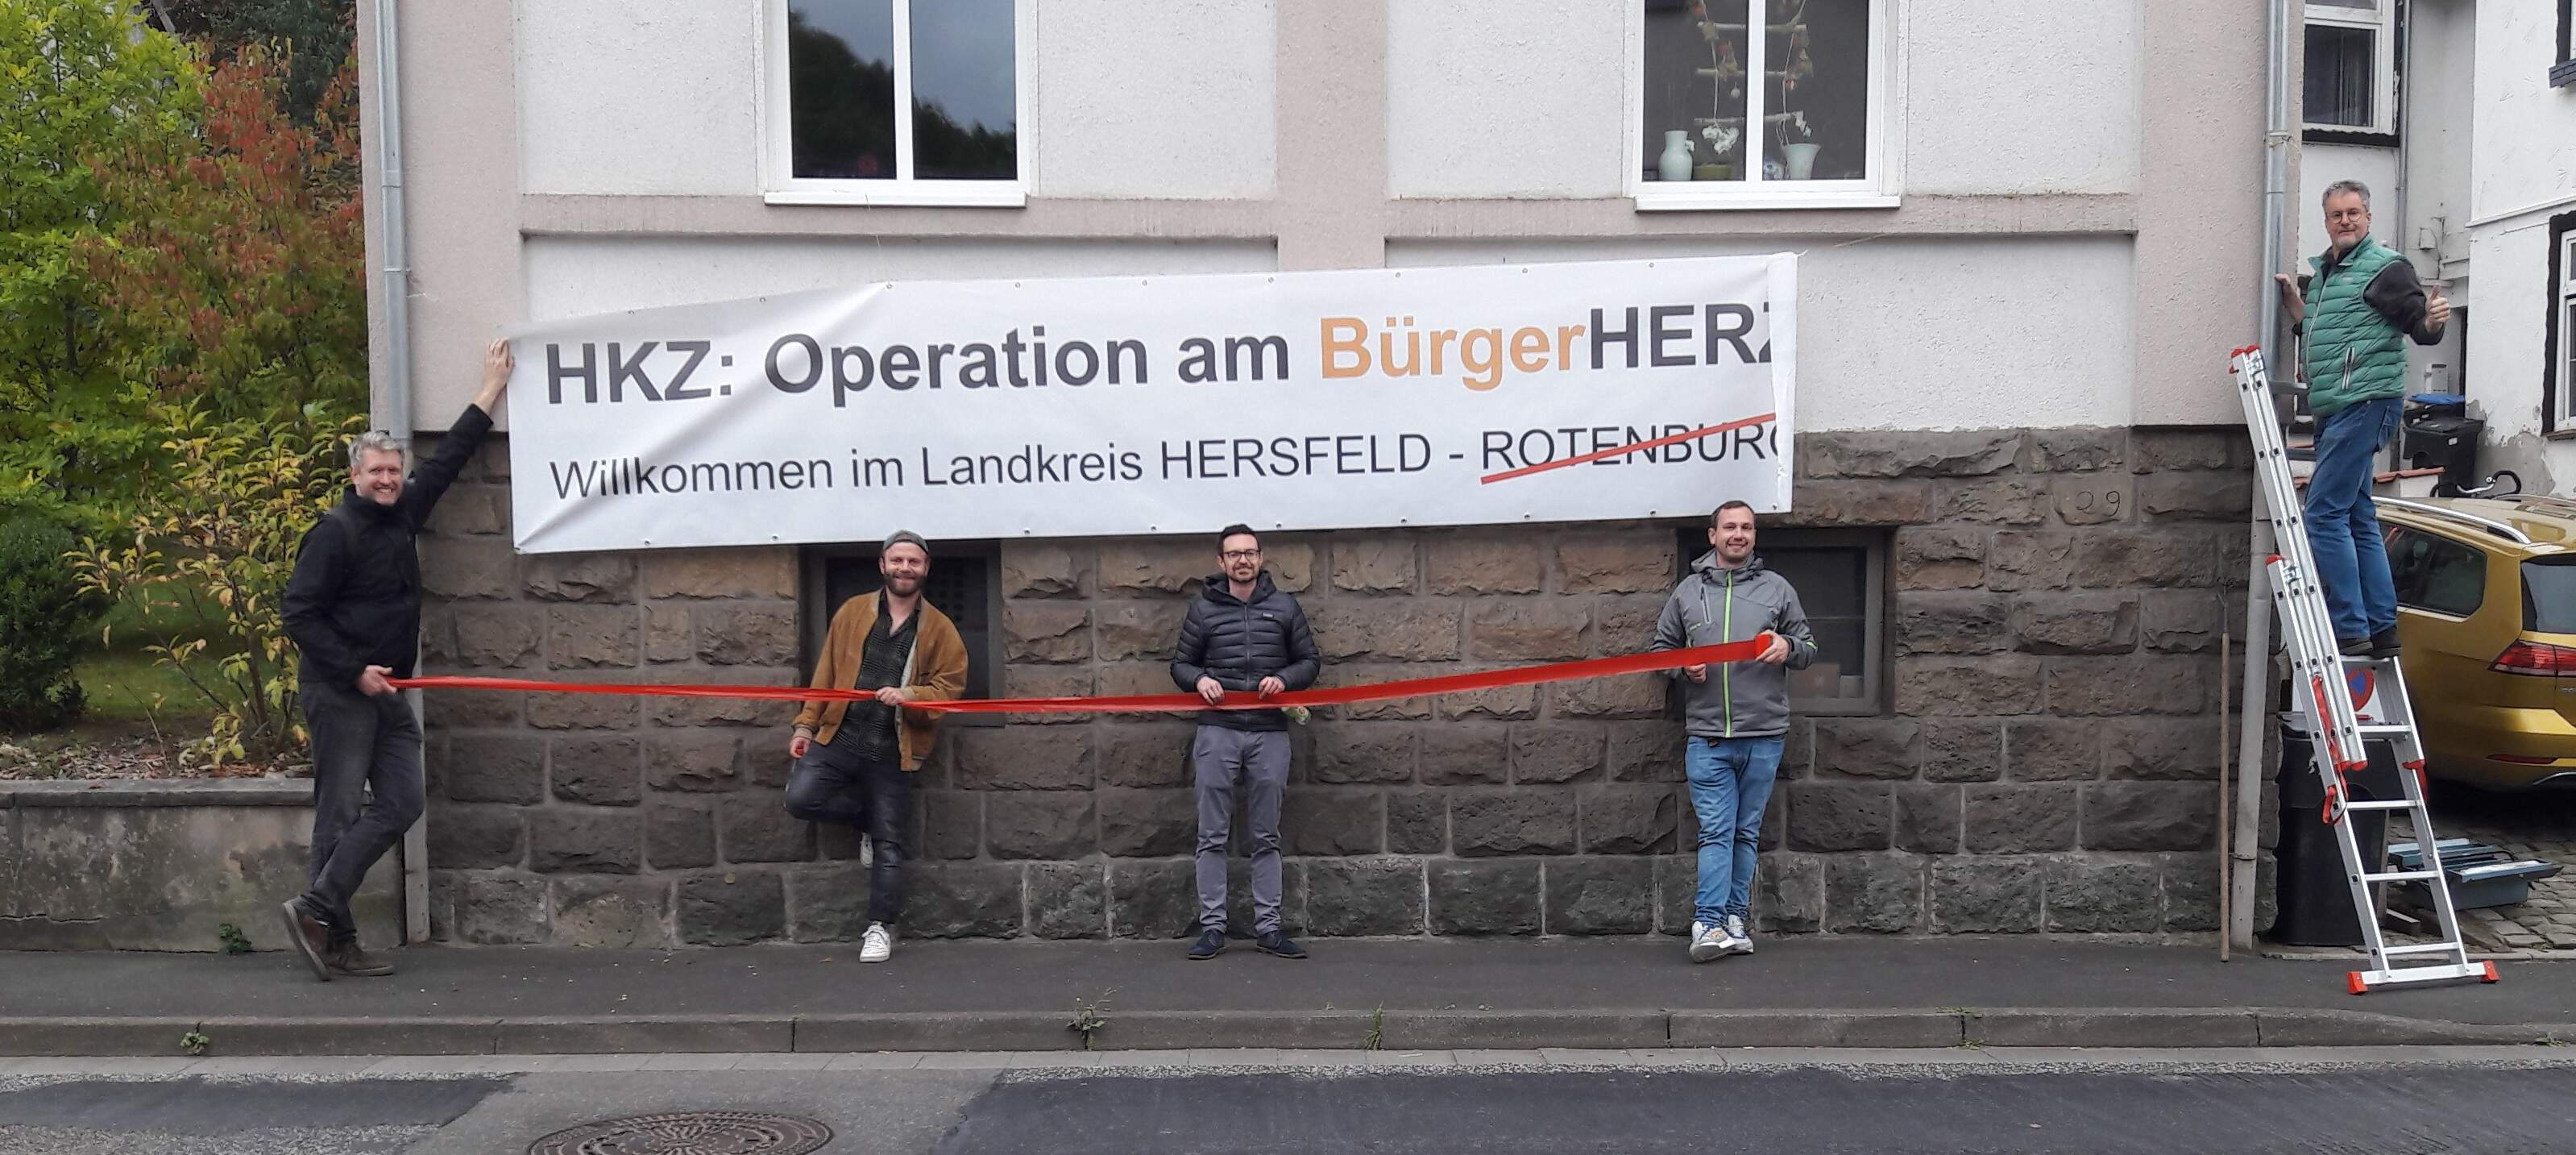 HKZ: Operation am BürgerHERZ